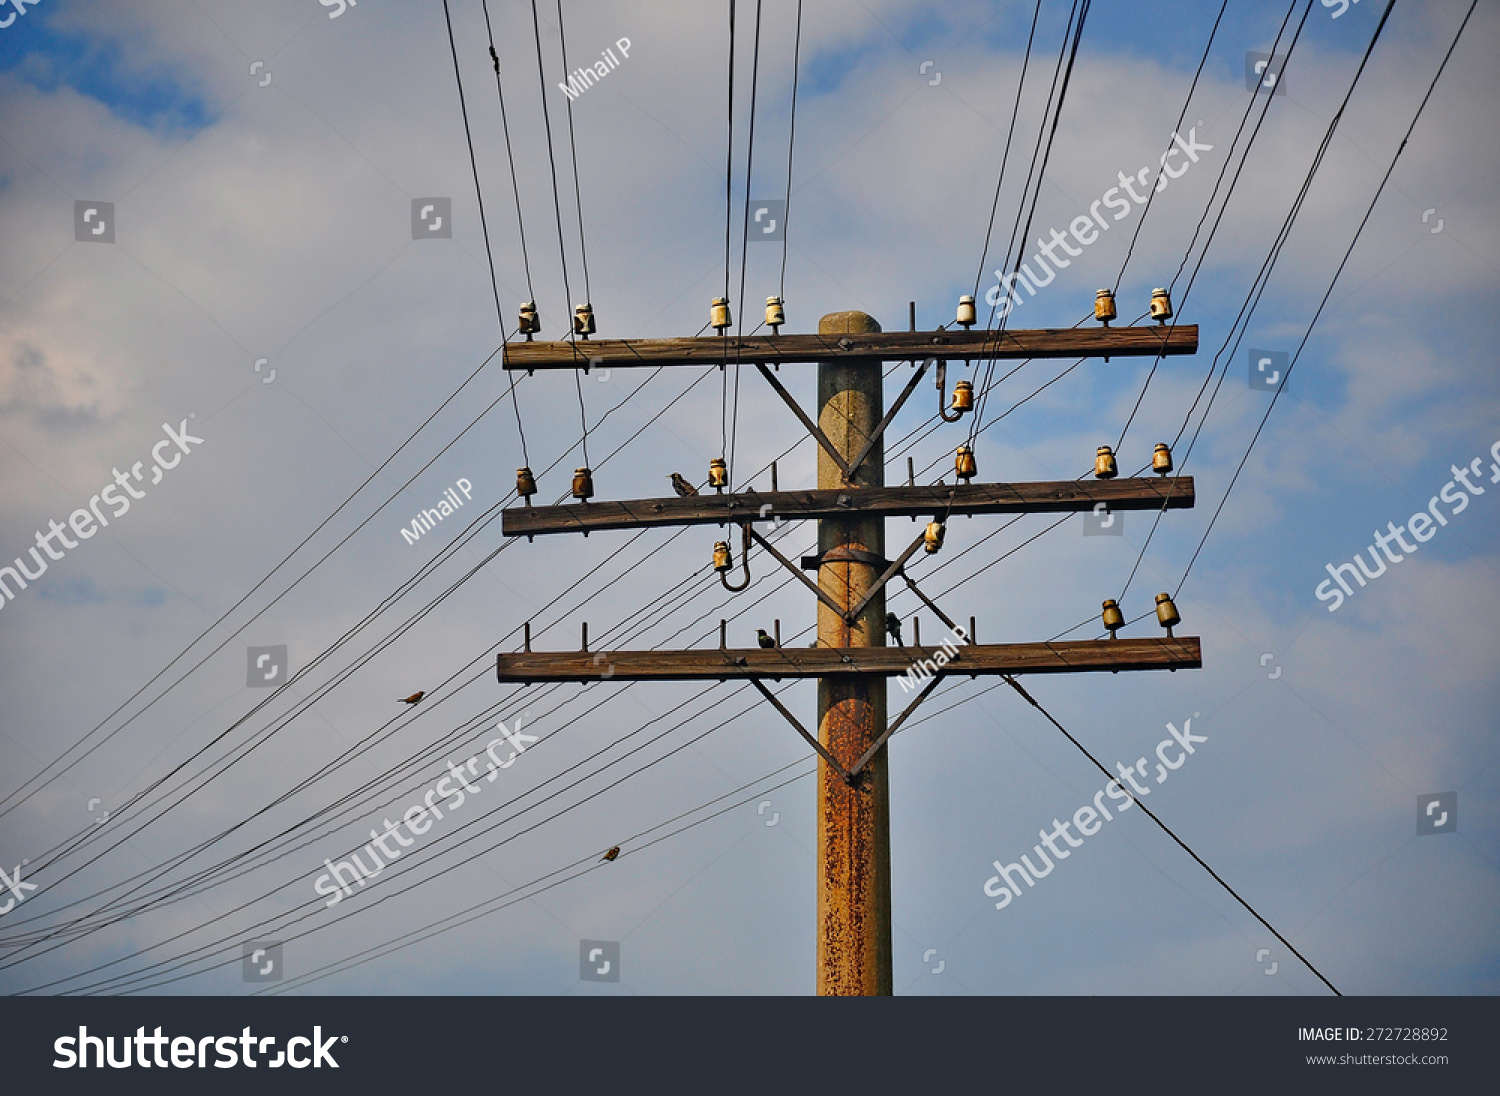 Old Telegraph Pole Wires Couple Birds Stock Photo (Royalty Free ...